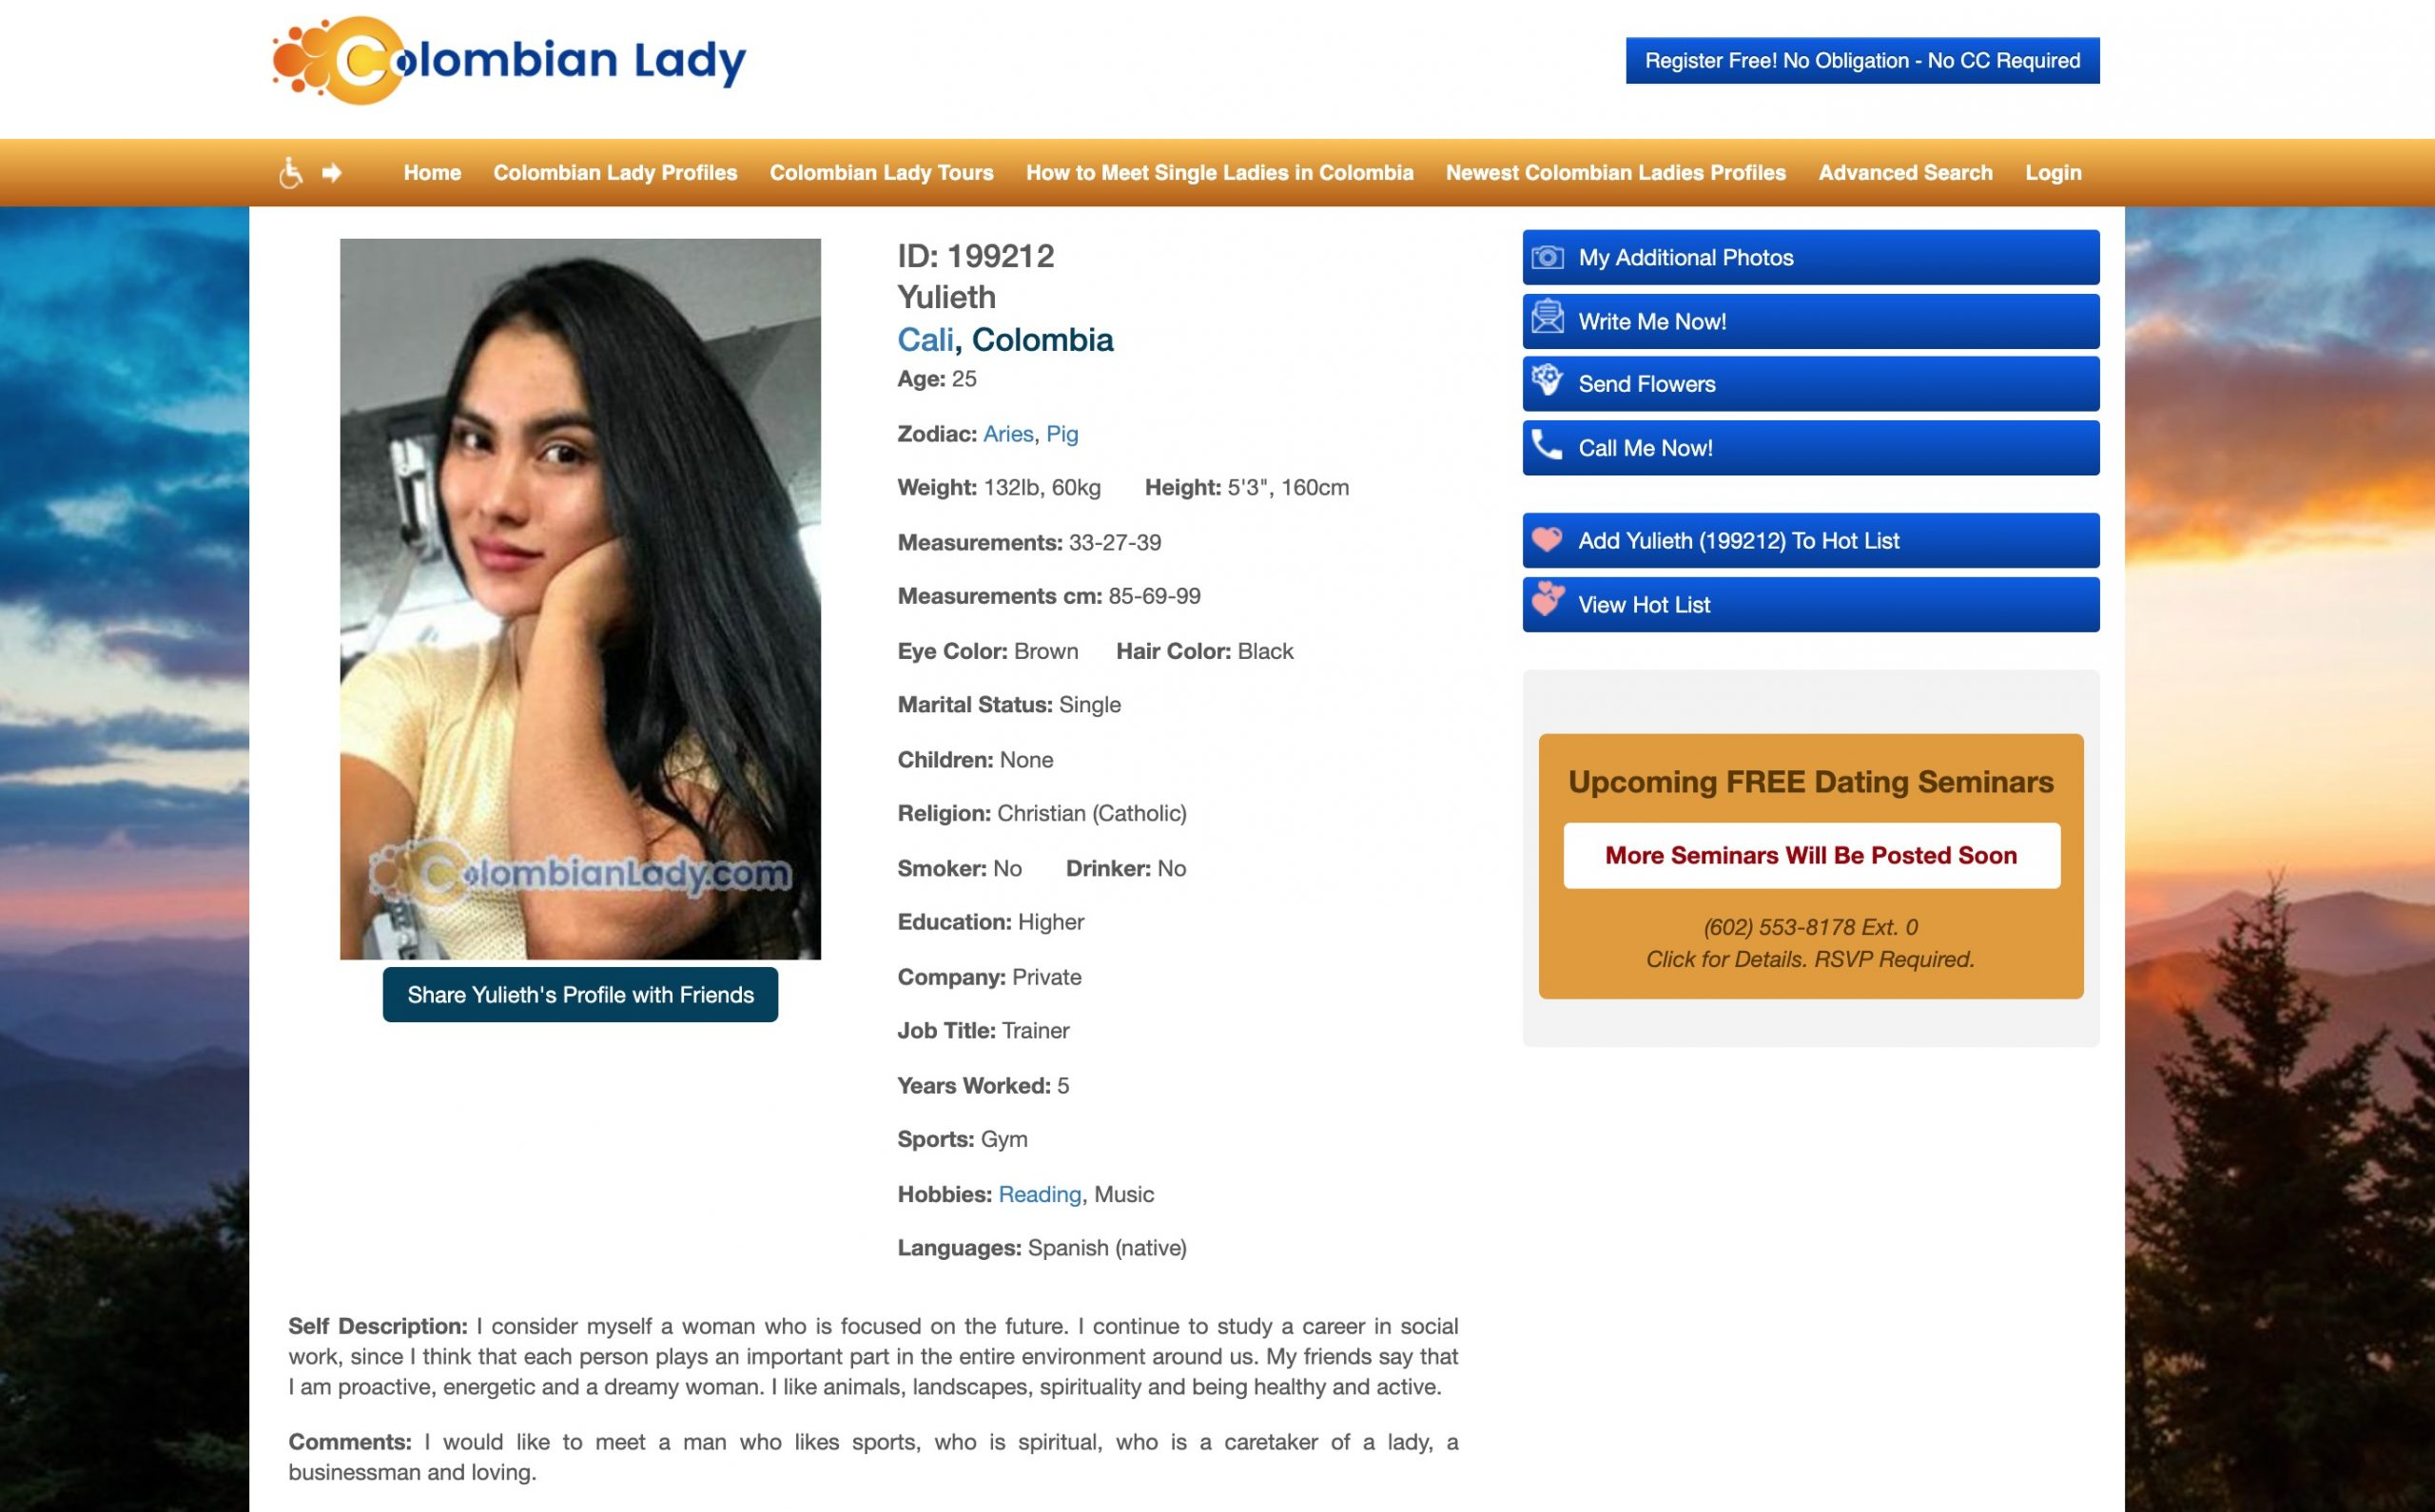 ColombianLady girl cover letter